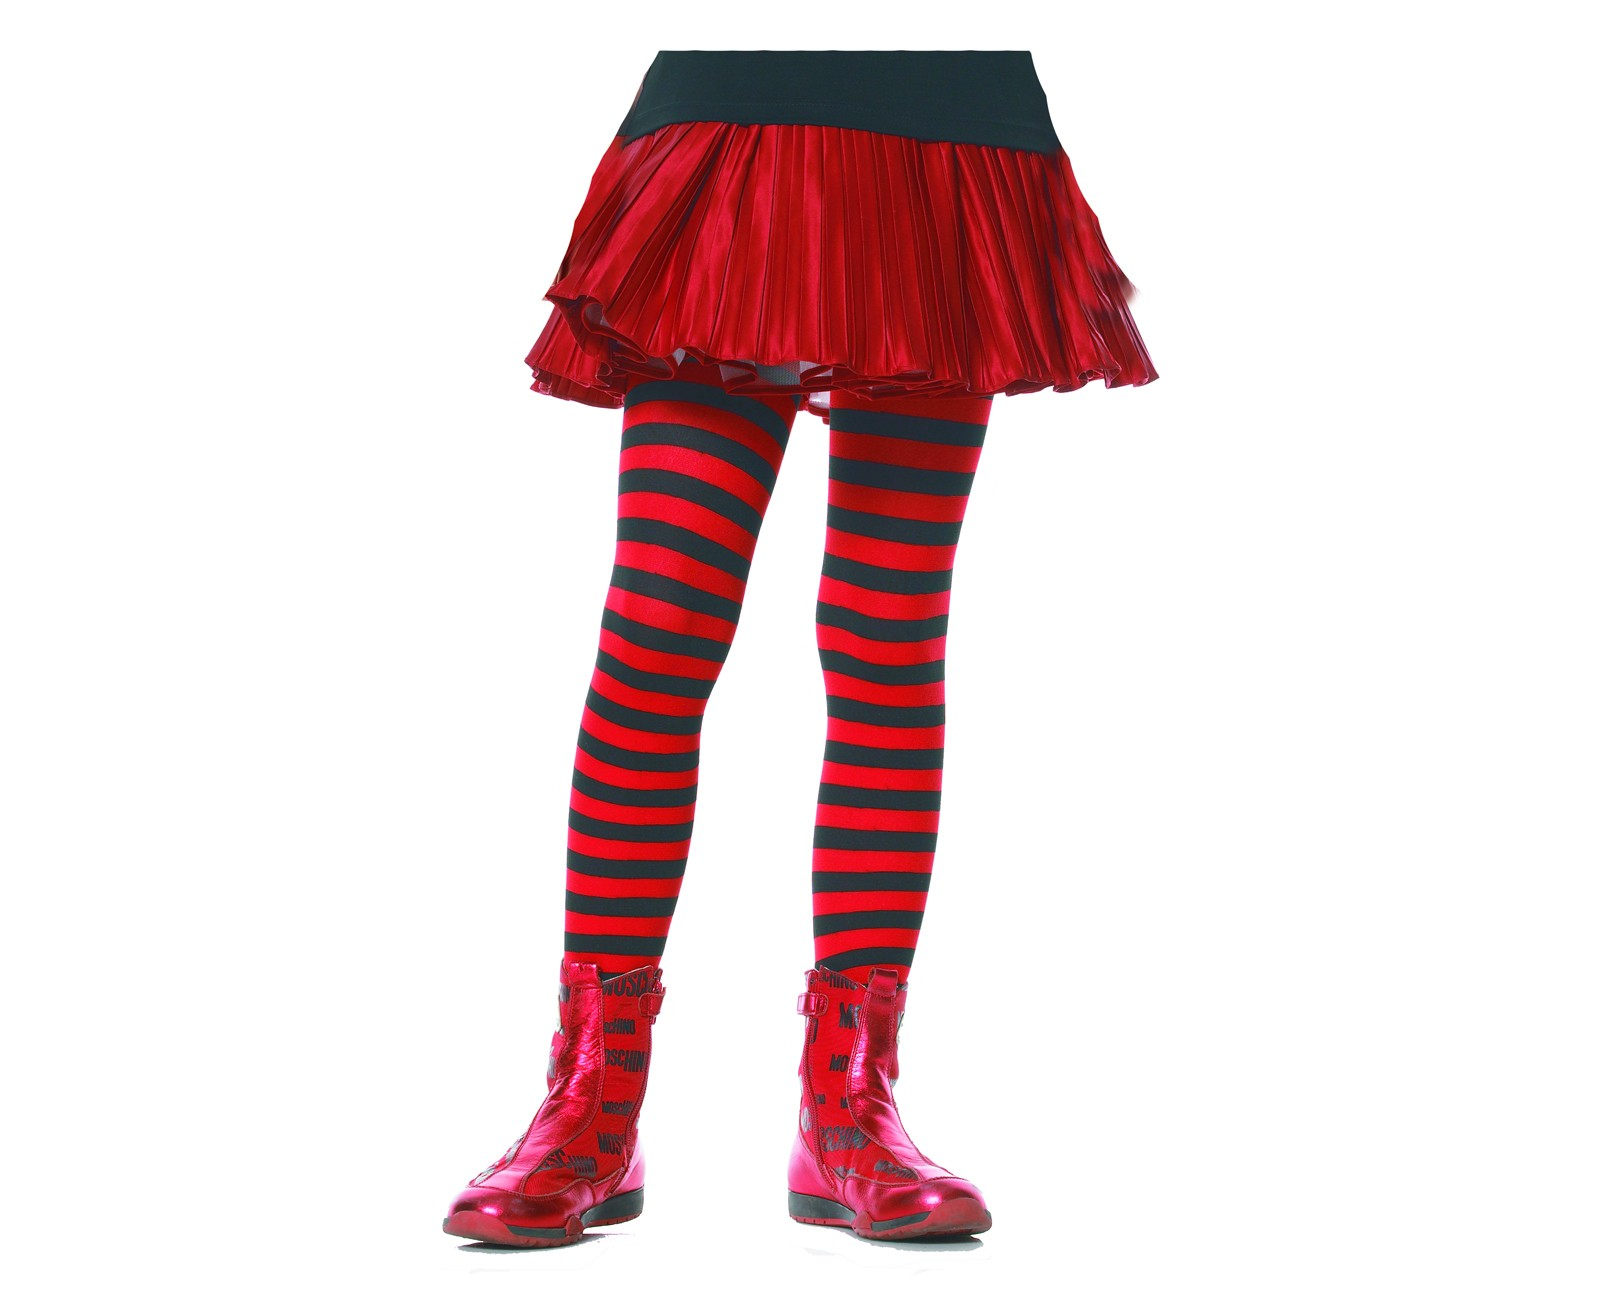 black/red striped dancer tights girl's halloween costume accessory